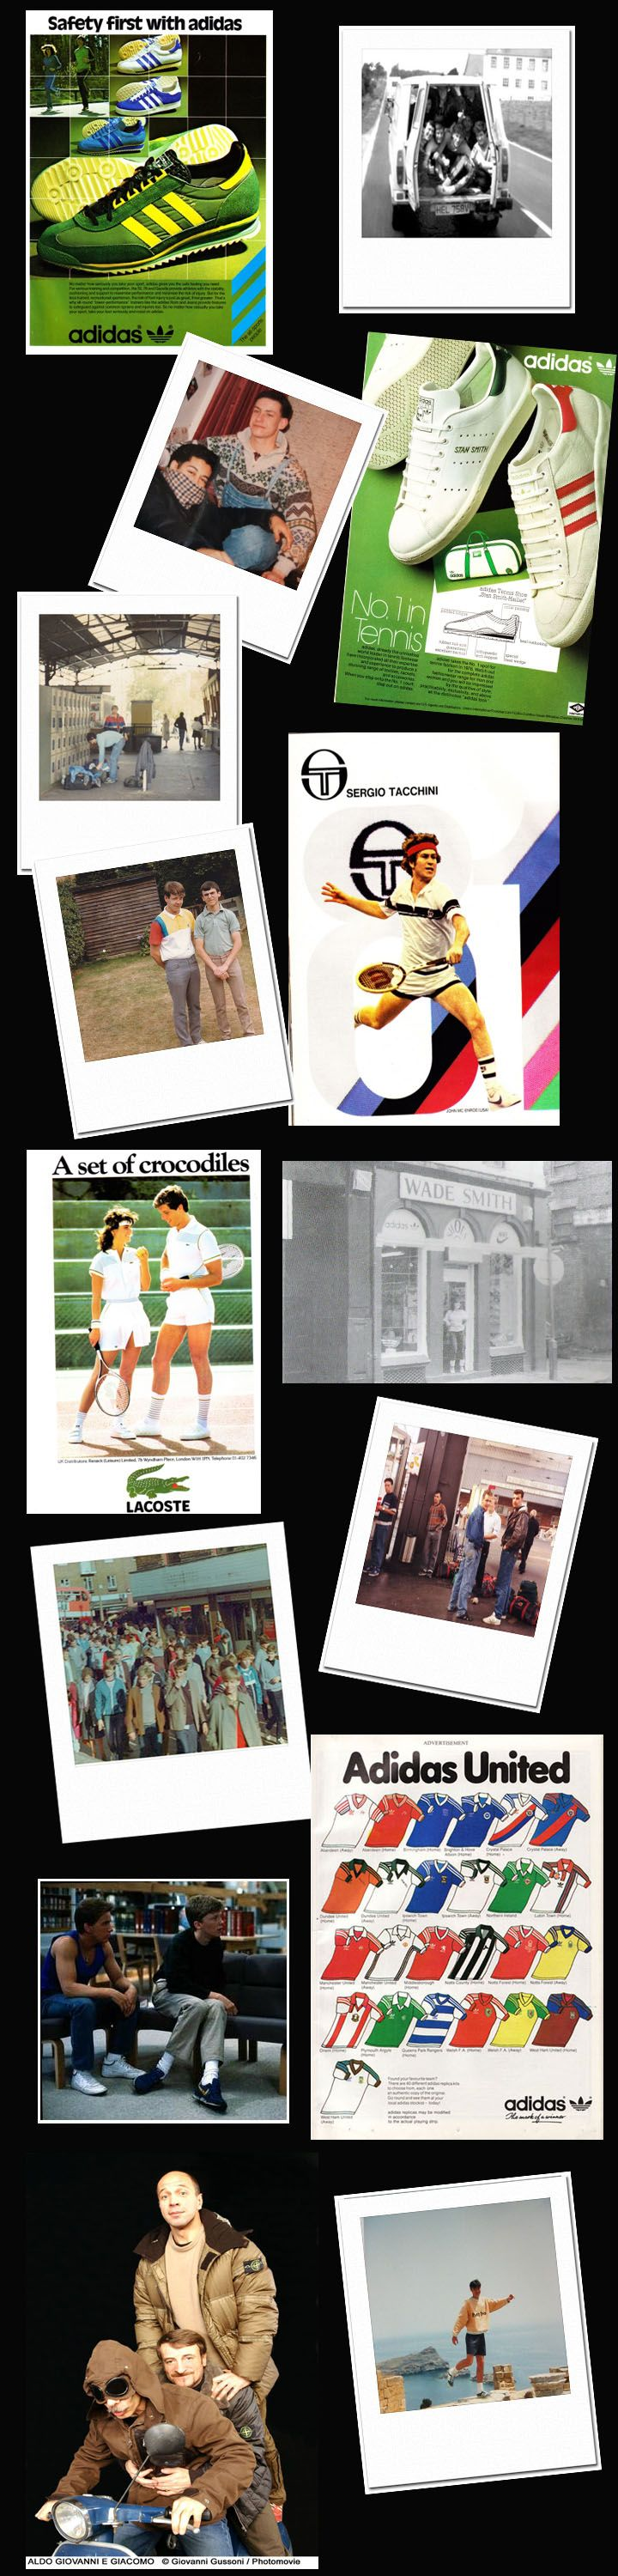 80s Casuals.The ultimate resource and store for football casuals. Those were the days..